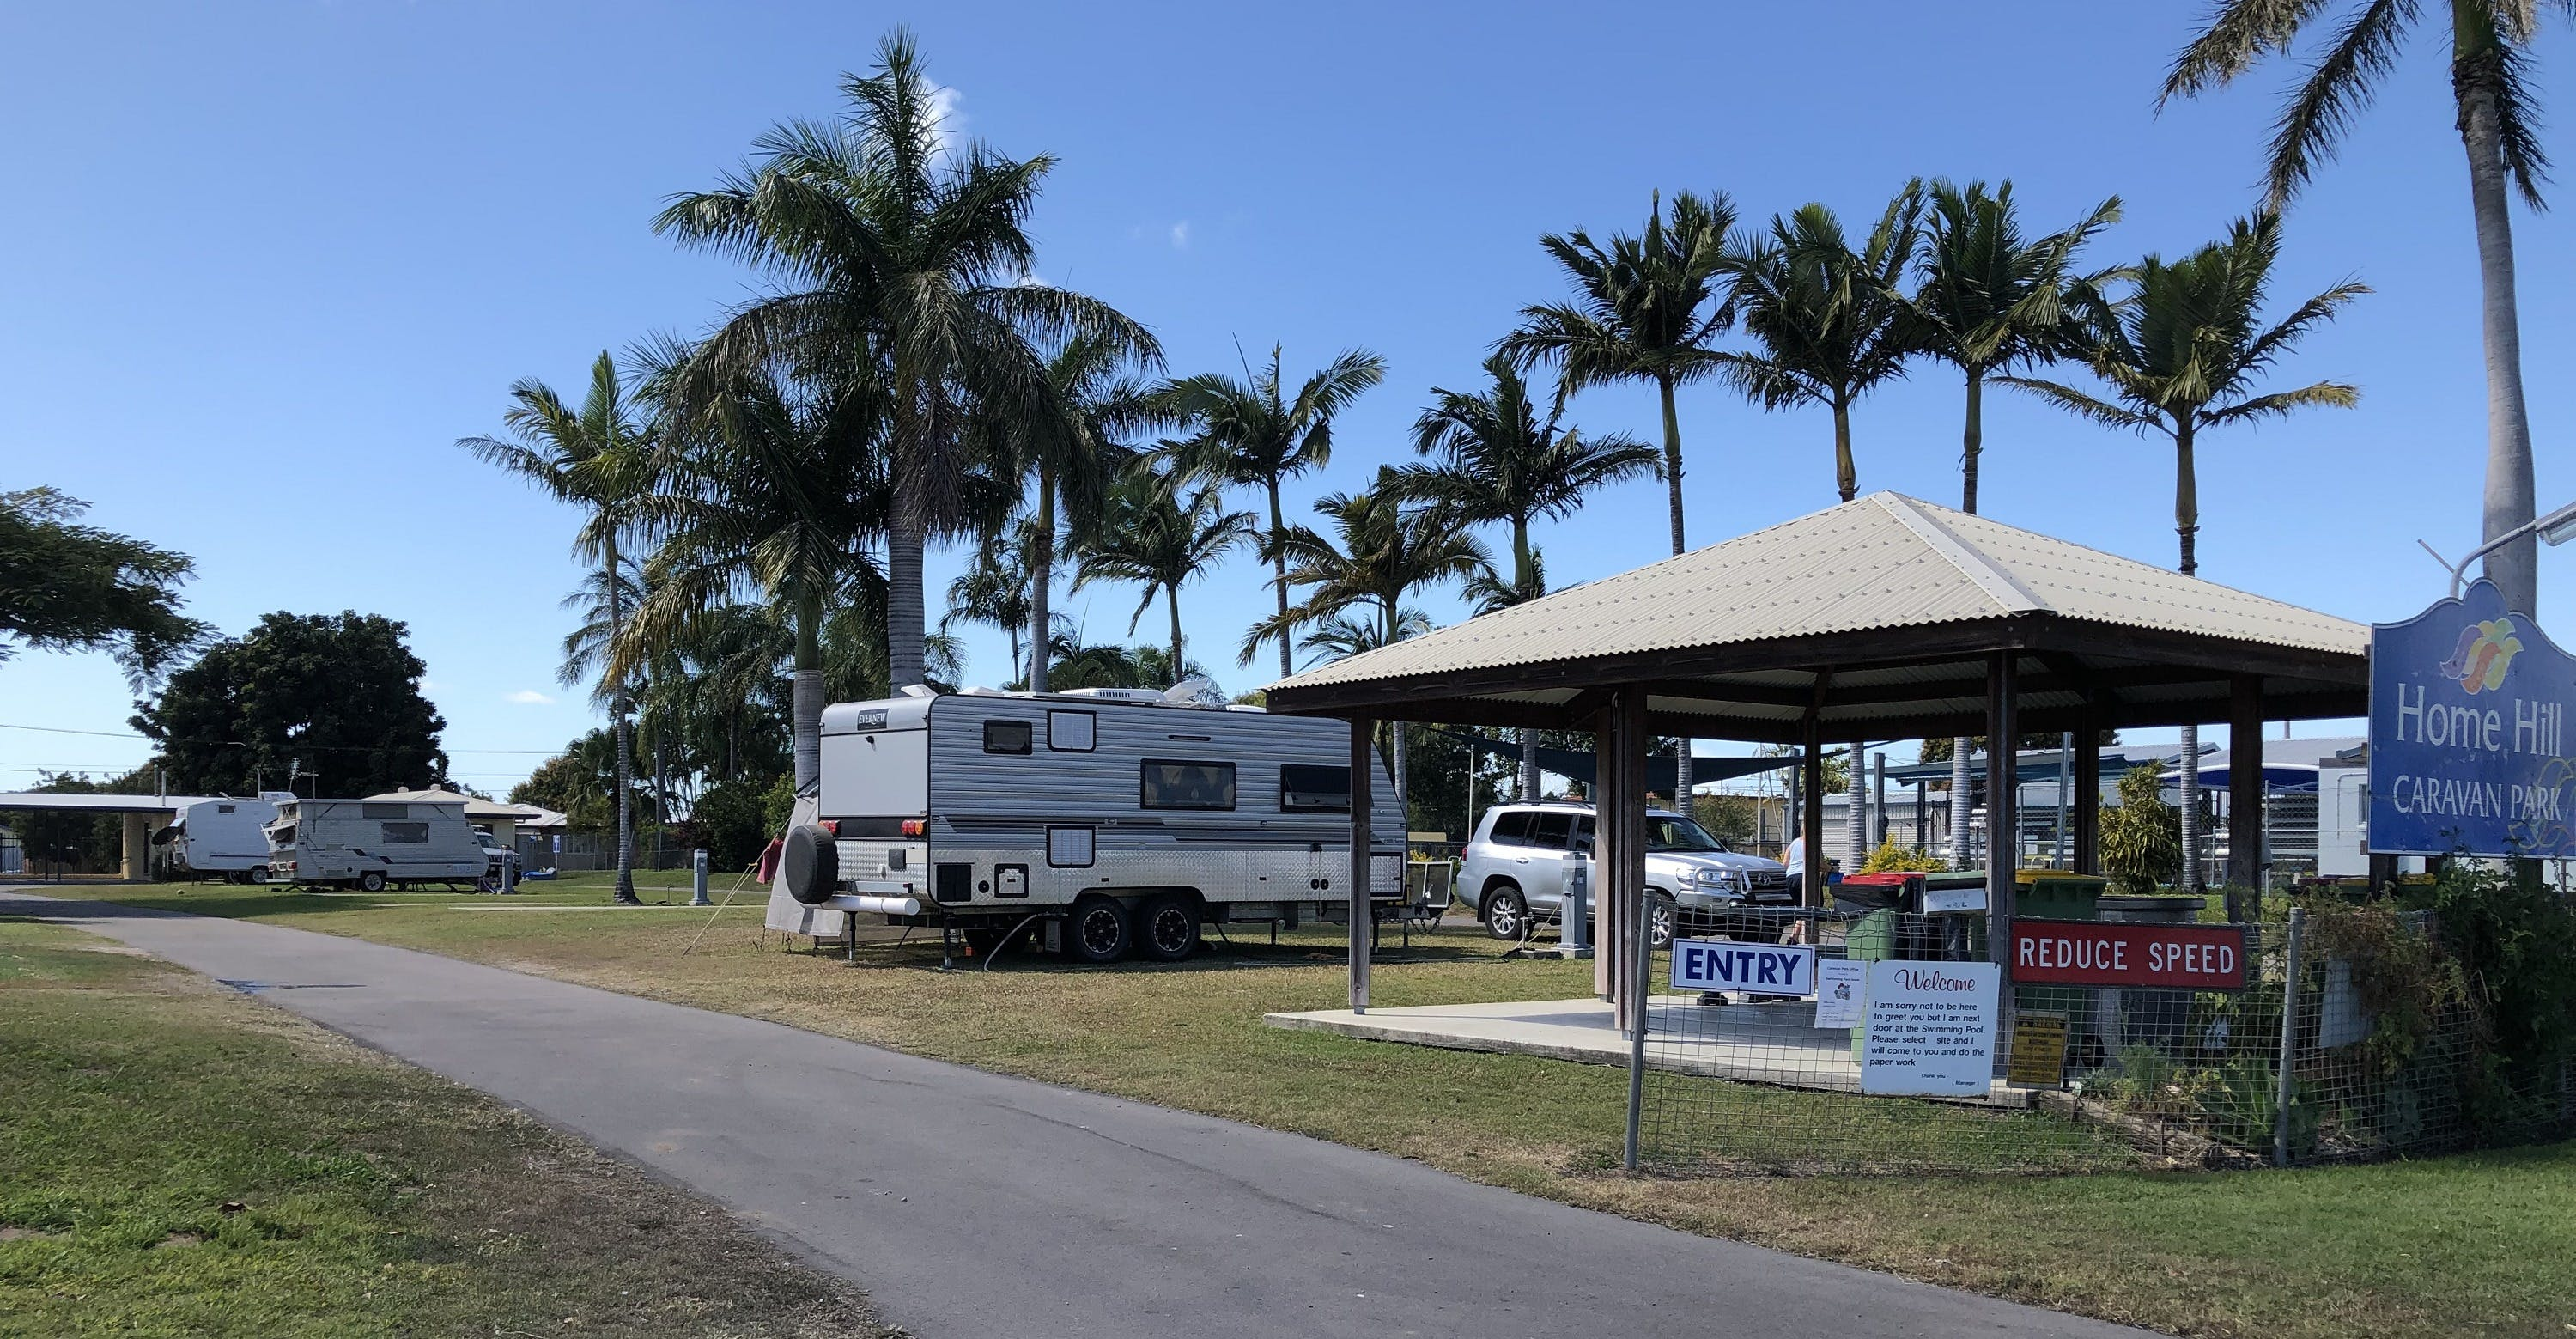 Home Hill Caravan Park - Accommodation Coffs Harbour